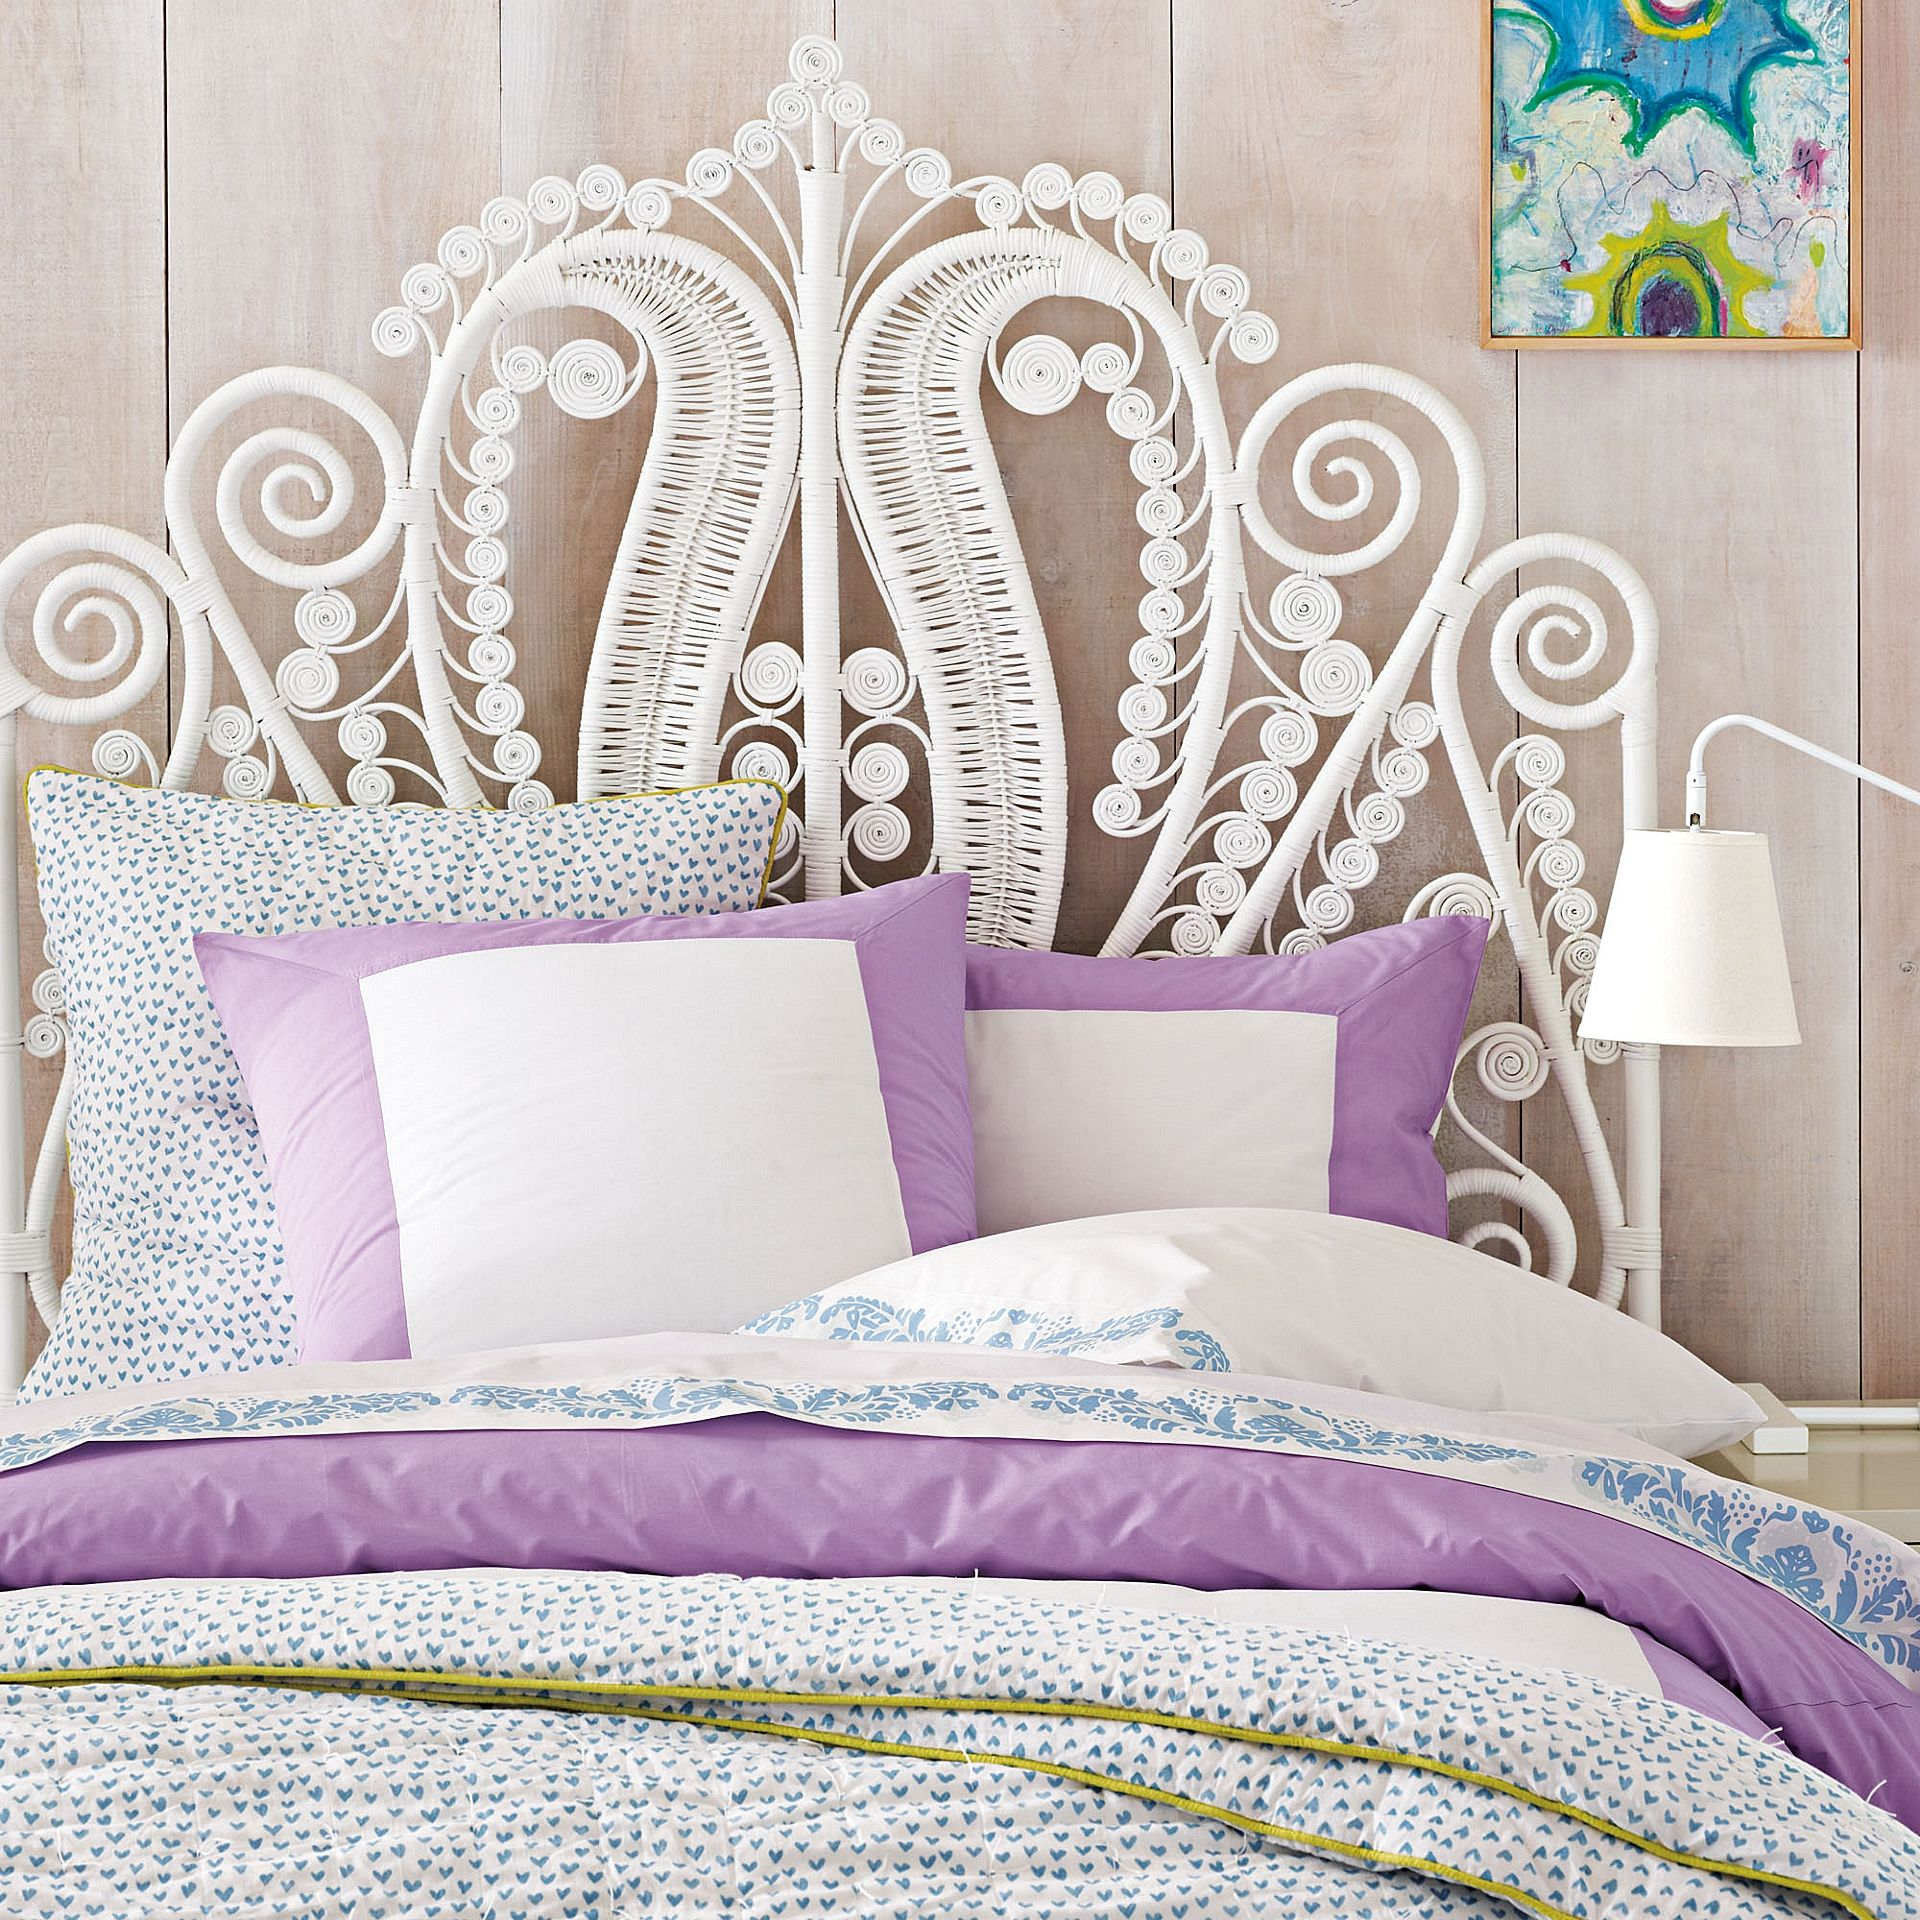 s headboards design girl bedroom pin garrett pink bedrooms randi gold and headboard girls wingback makeover